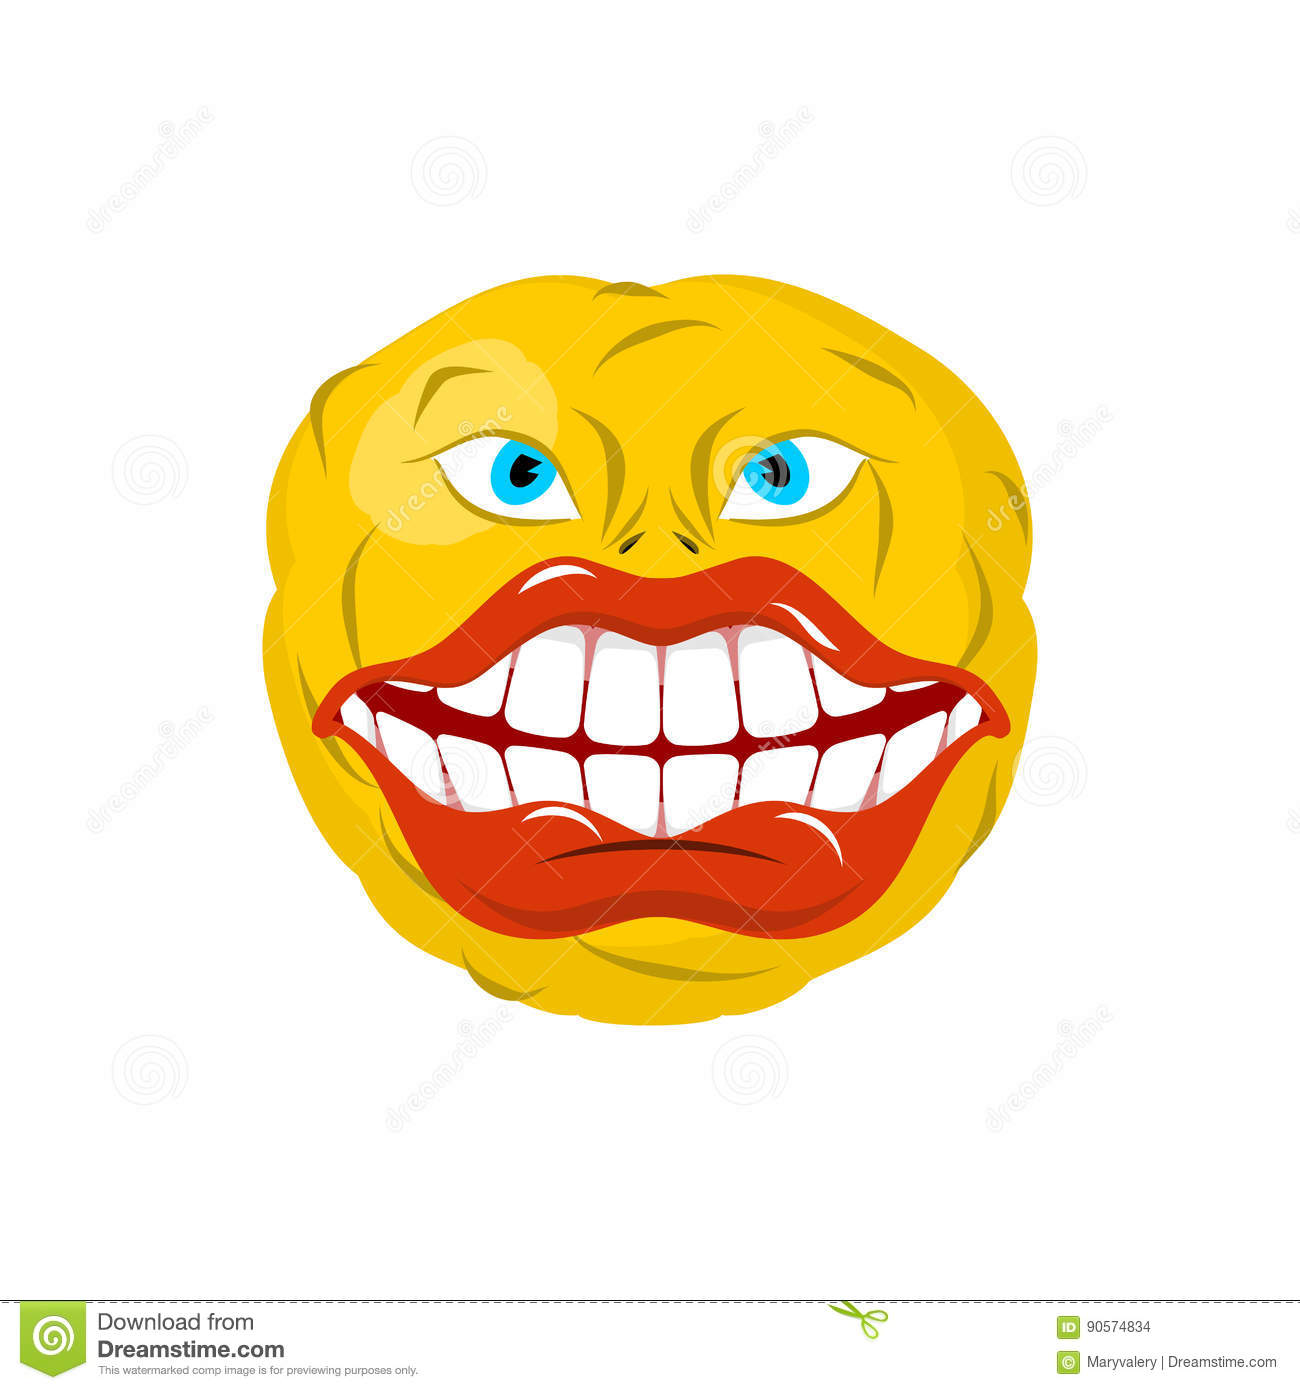 Crazy emoji happy is an emotion yellow ball